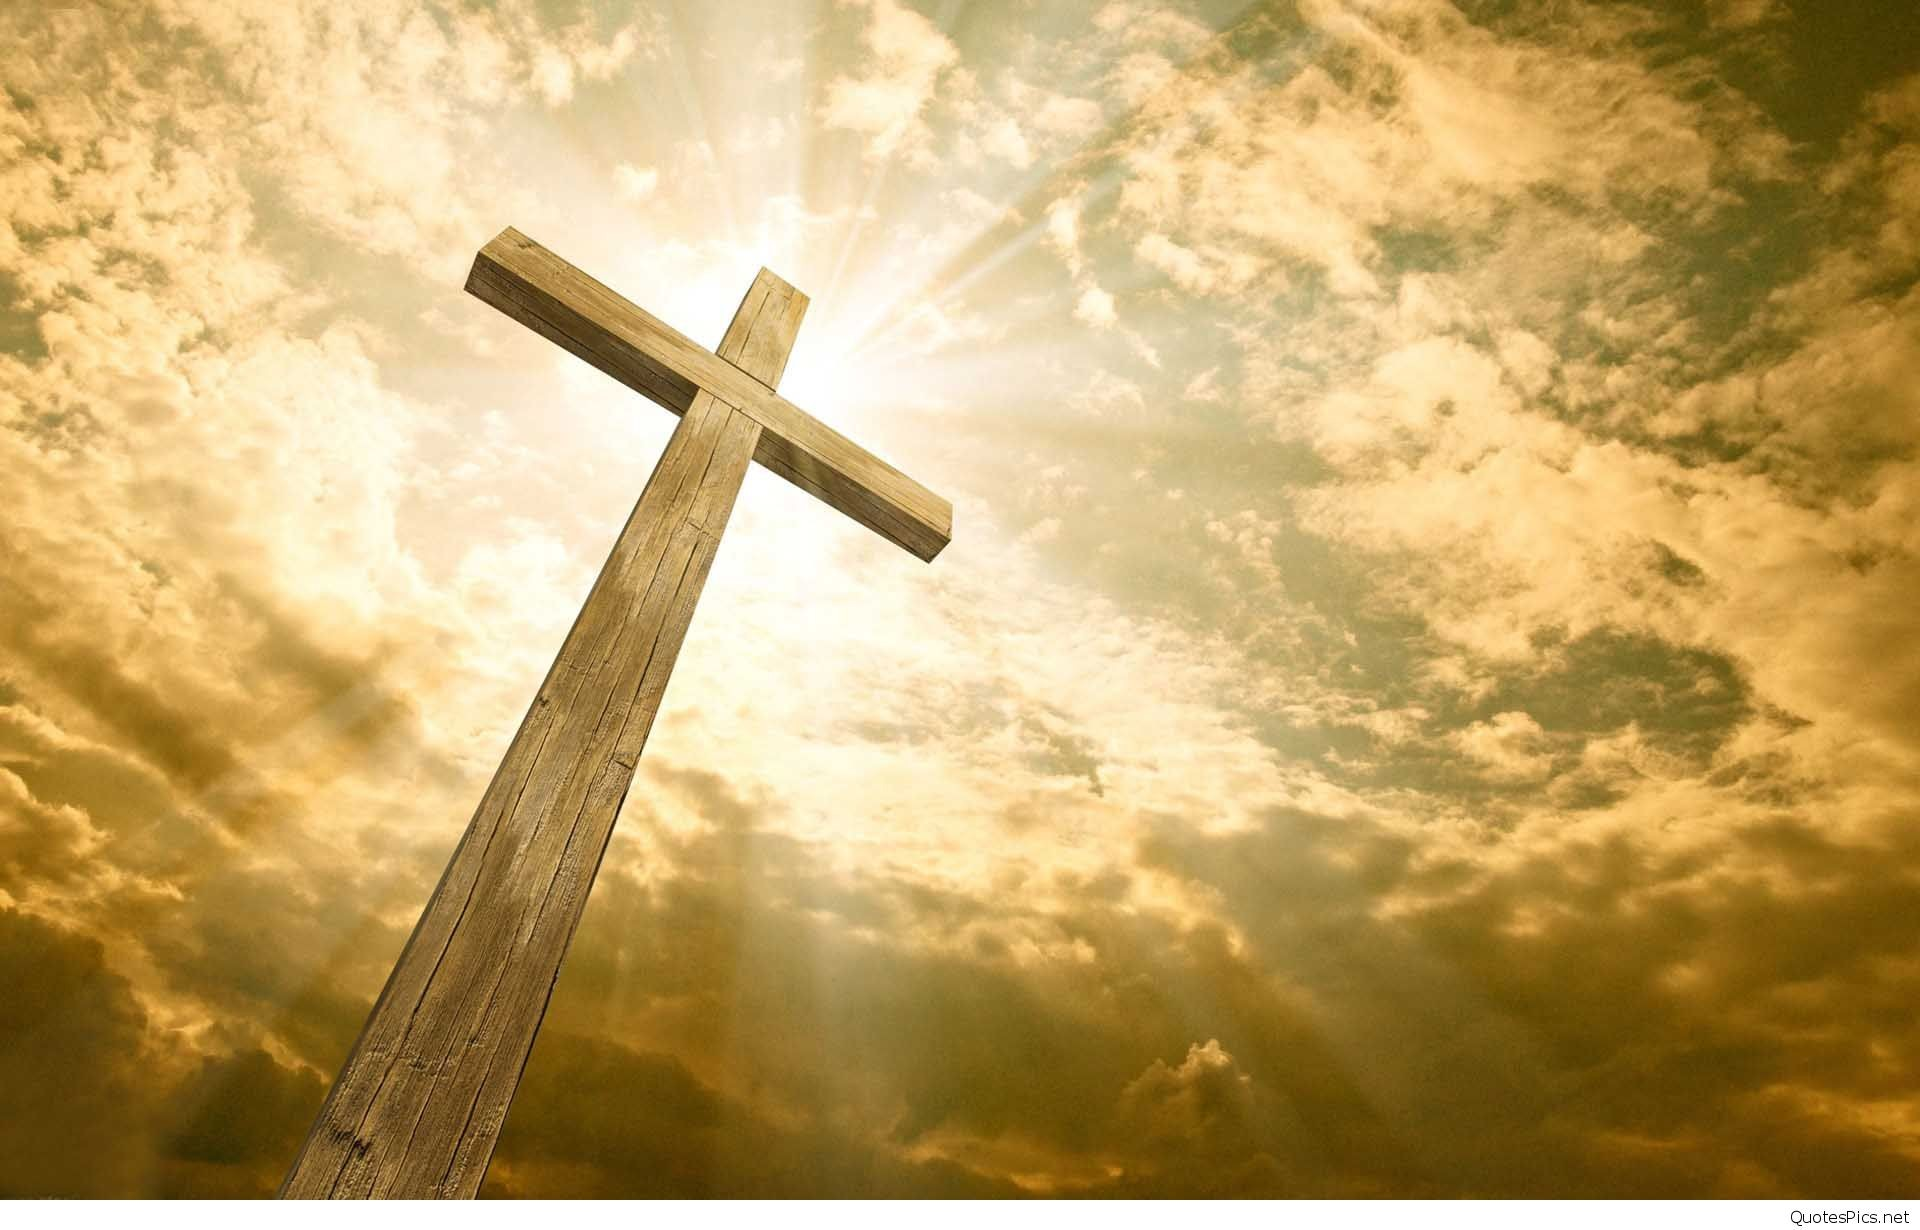 Christian hd wallpapers 1920x1230 religious cross wallpaper and backgrounds hd christian cross wallpapers wallpapers voltagebd Choice Image